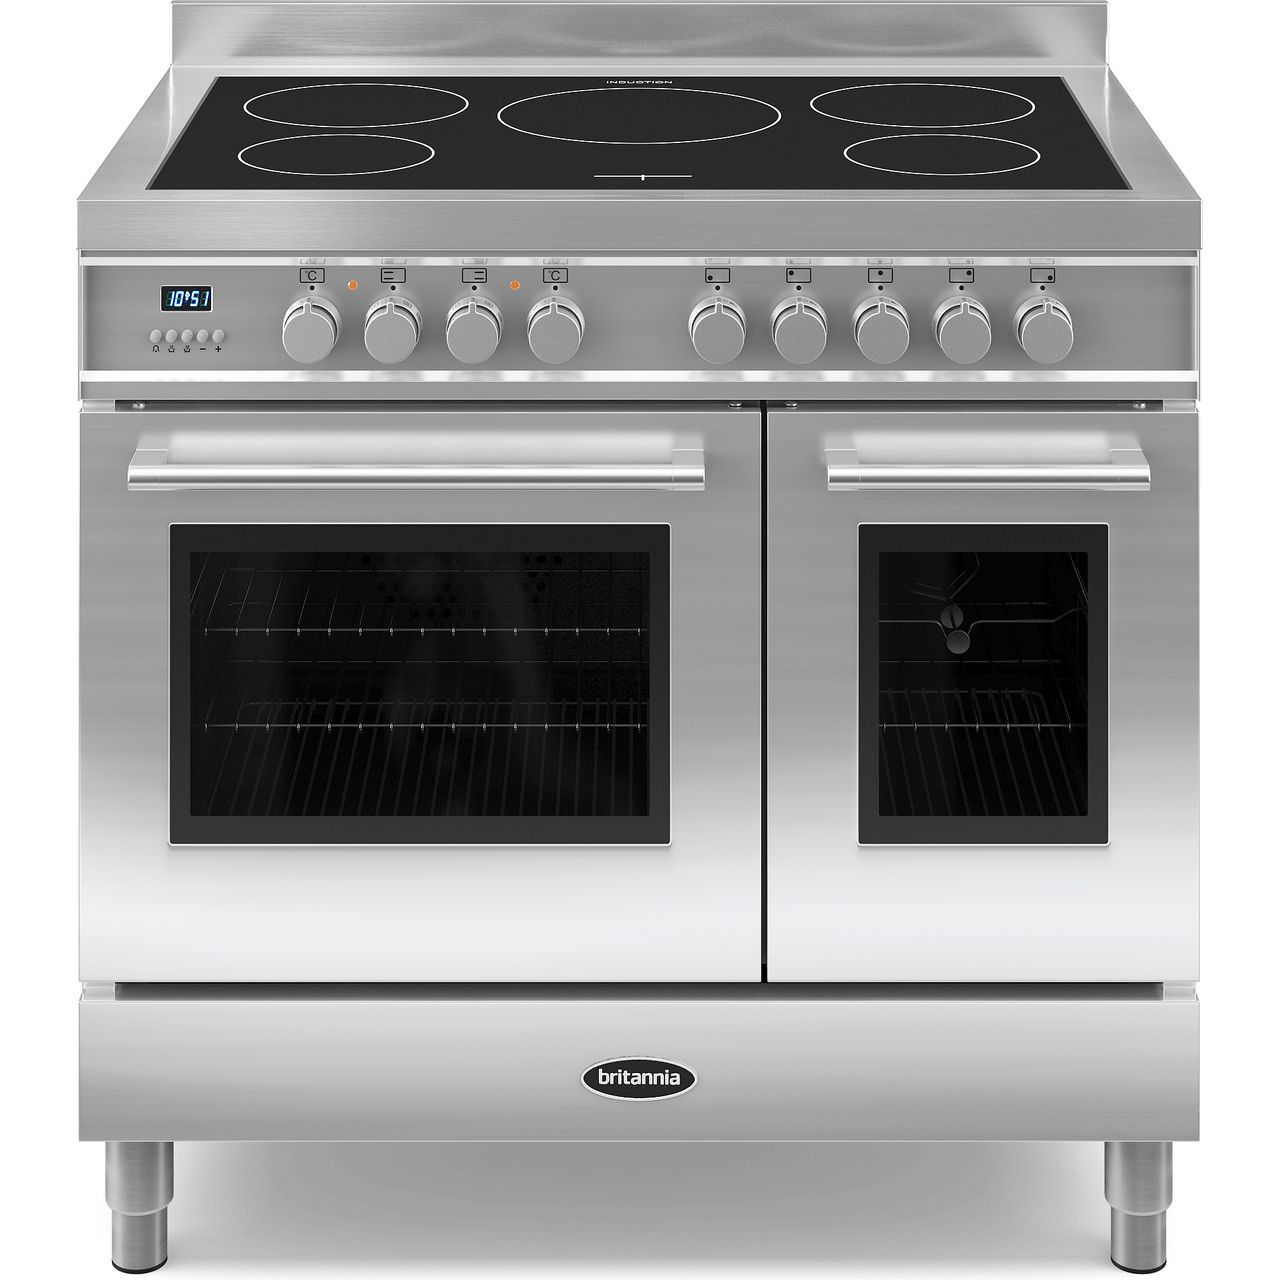 Britannia RC-9TI-QL-S Q Line 90cm Electric Range Cooker with Induction Hob - Stainless Steel